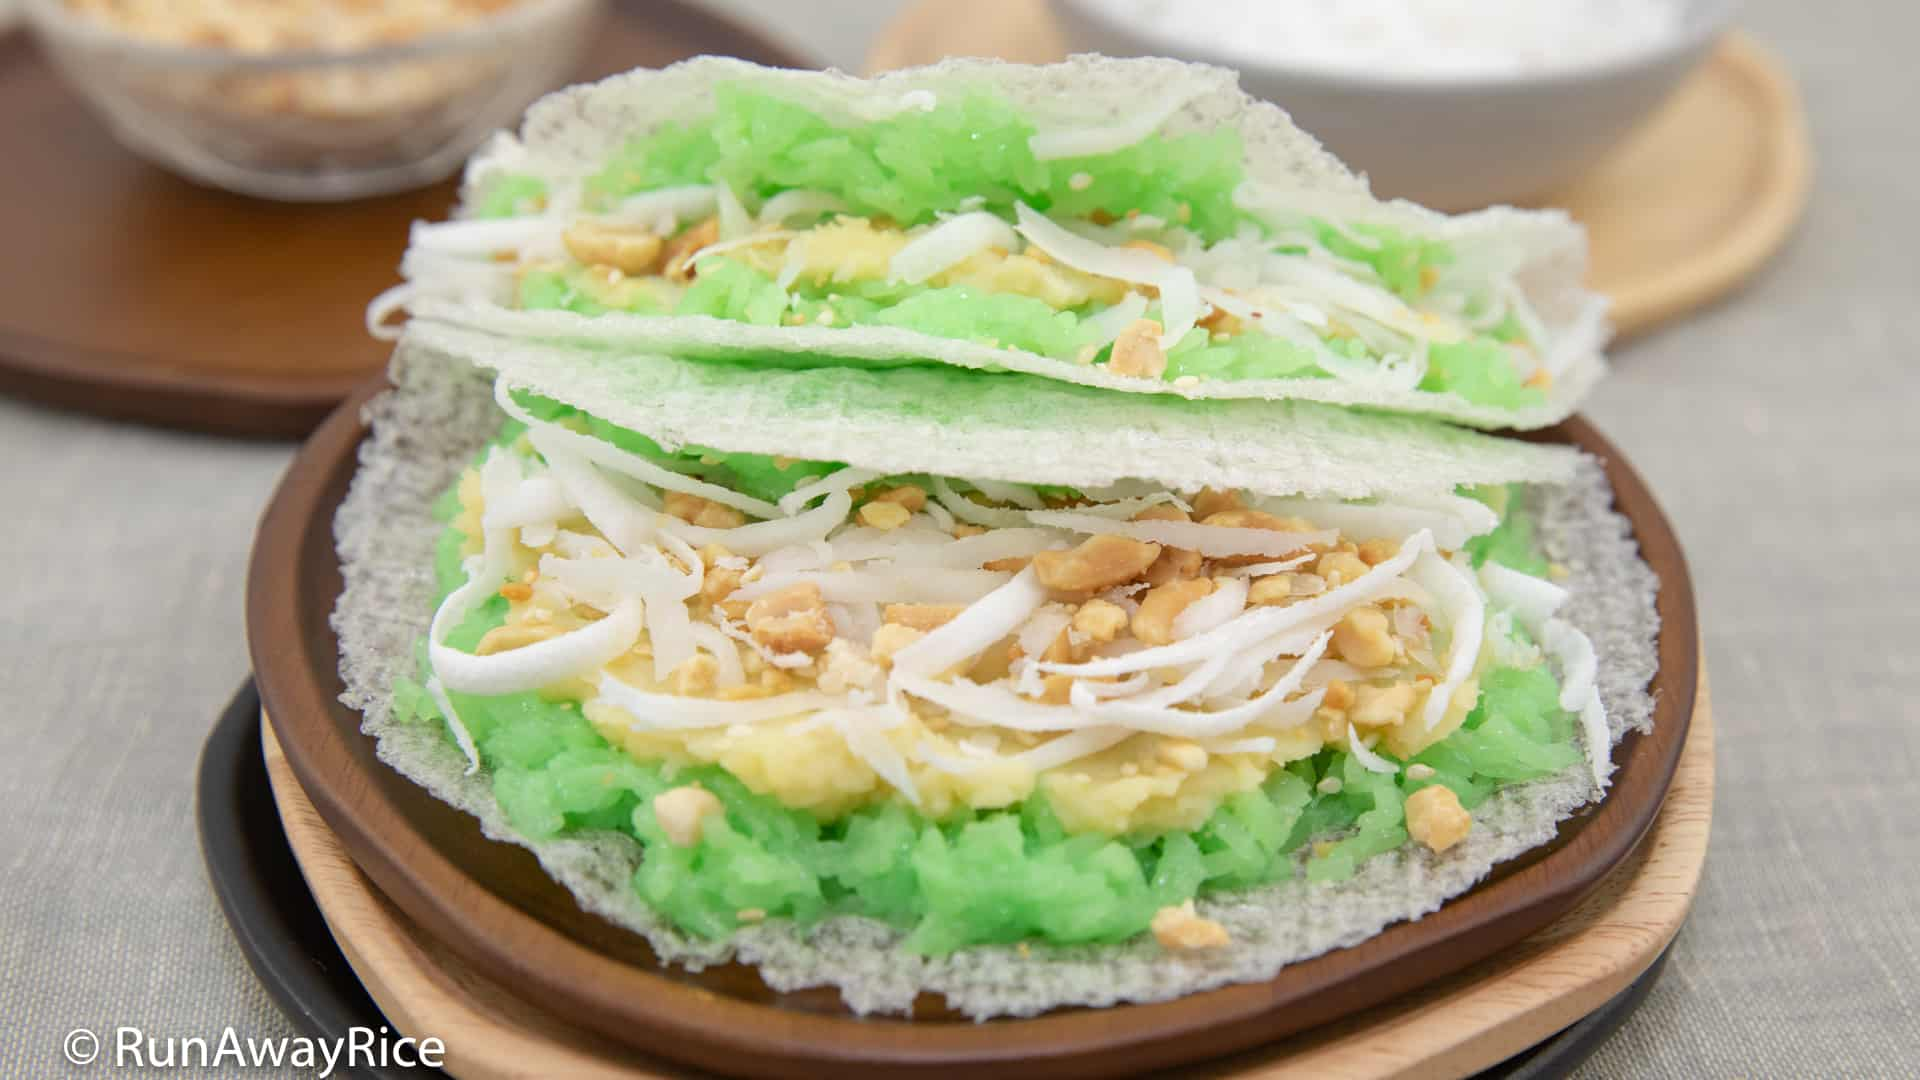 Pandan Sticky Rice with Tapioca Paper (Xoi Boc Banh Trang) - Breakfast or Snack Food! | recipe from runawayrice.com